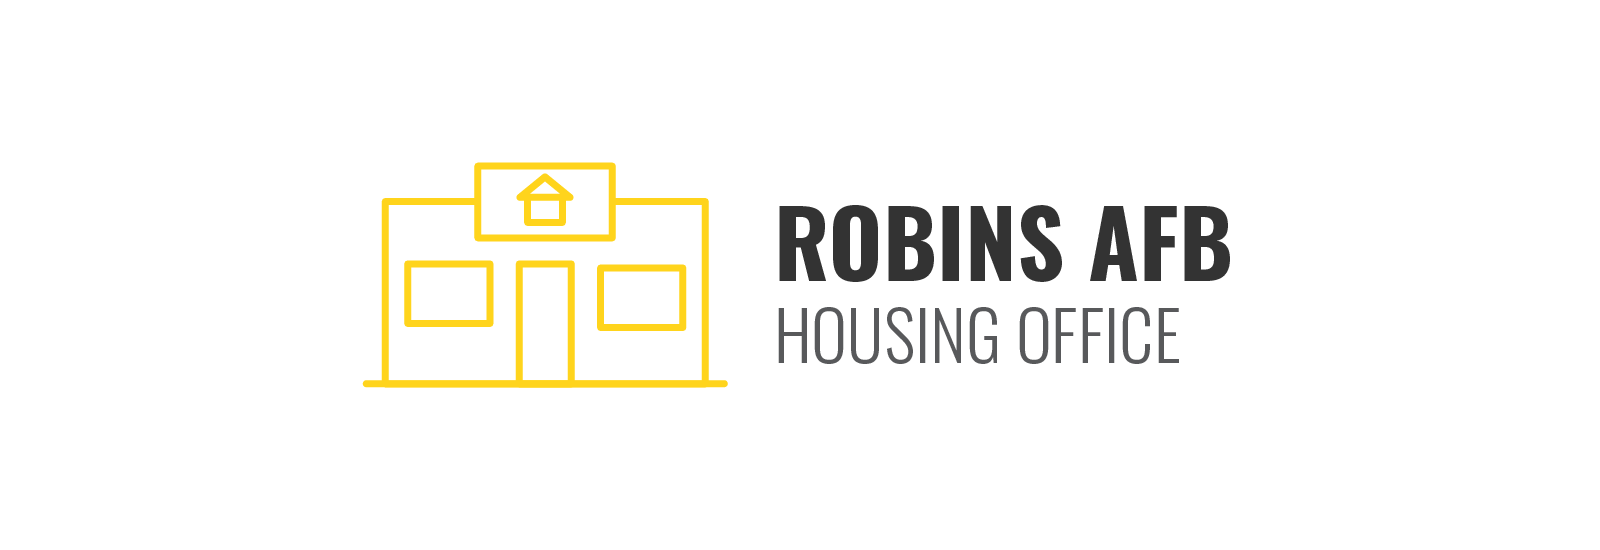 Robins AFB Housing office